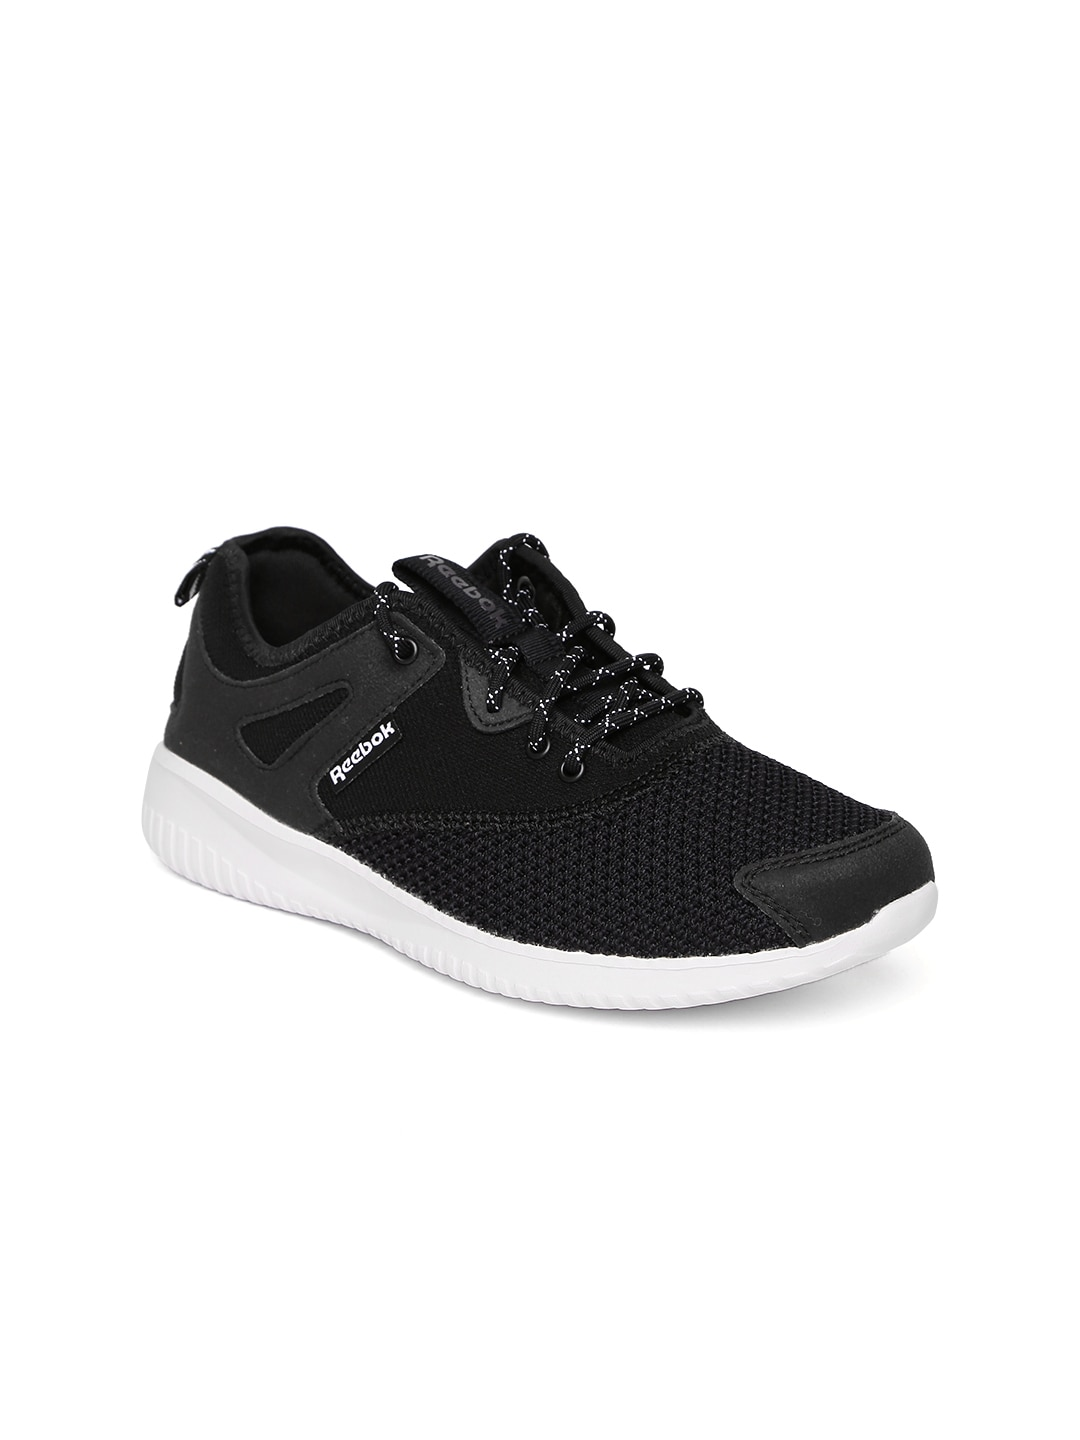 7921ac57f64b Buy Puma Women Black ST Trainer Evo Leopard Sneakers - Casual Shoes ...